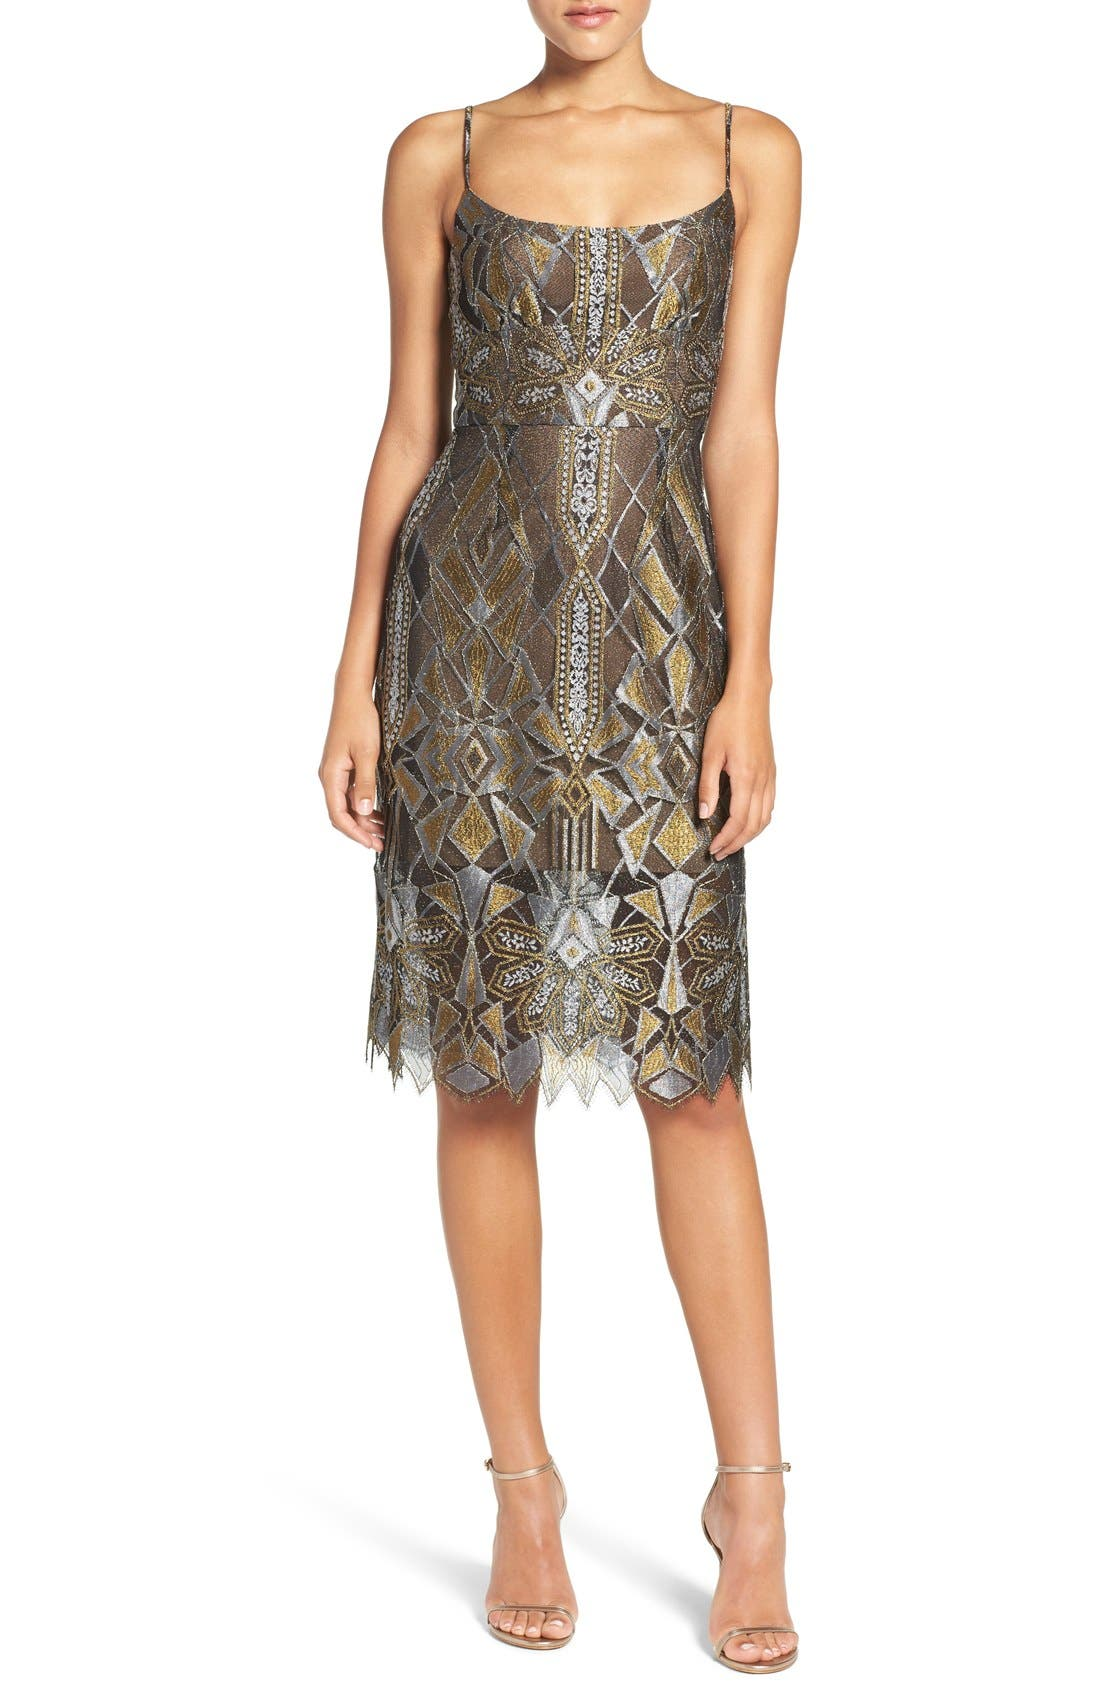 Alternate Image 1 Selected - BCBGMAXAZRIA 'Alese' Metallic Lace Slipdress